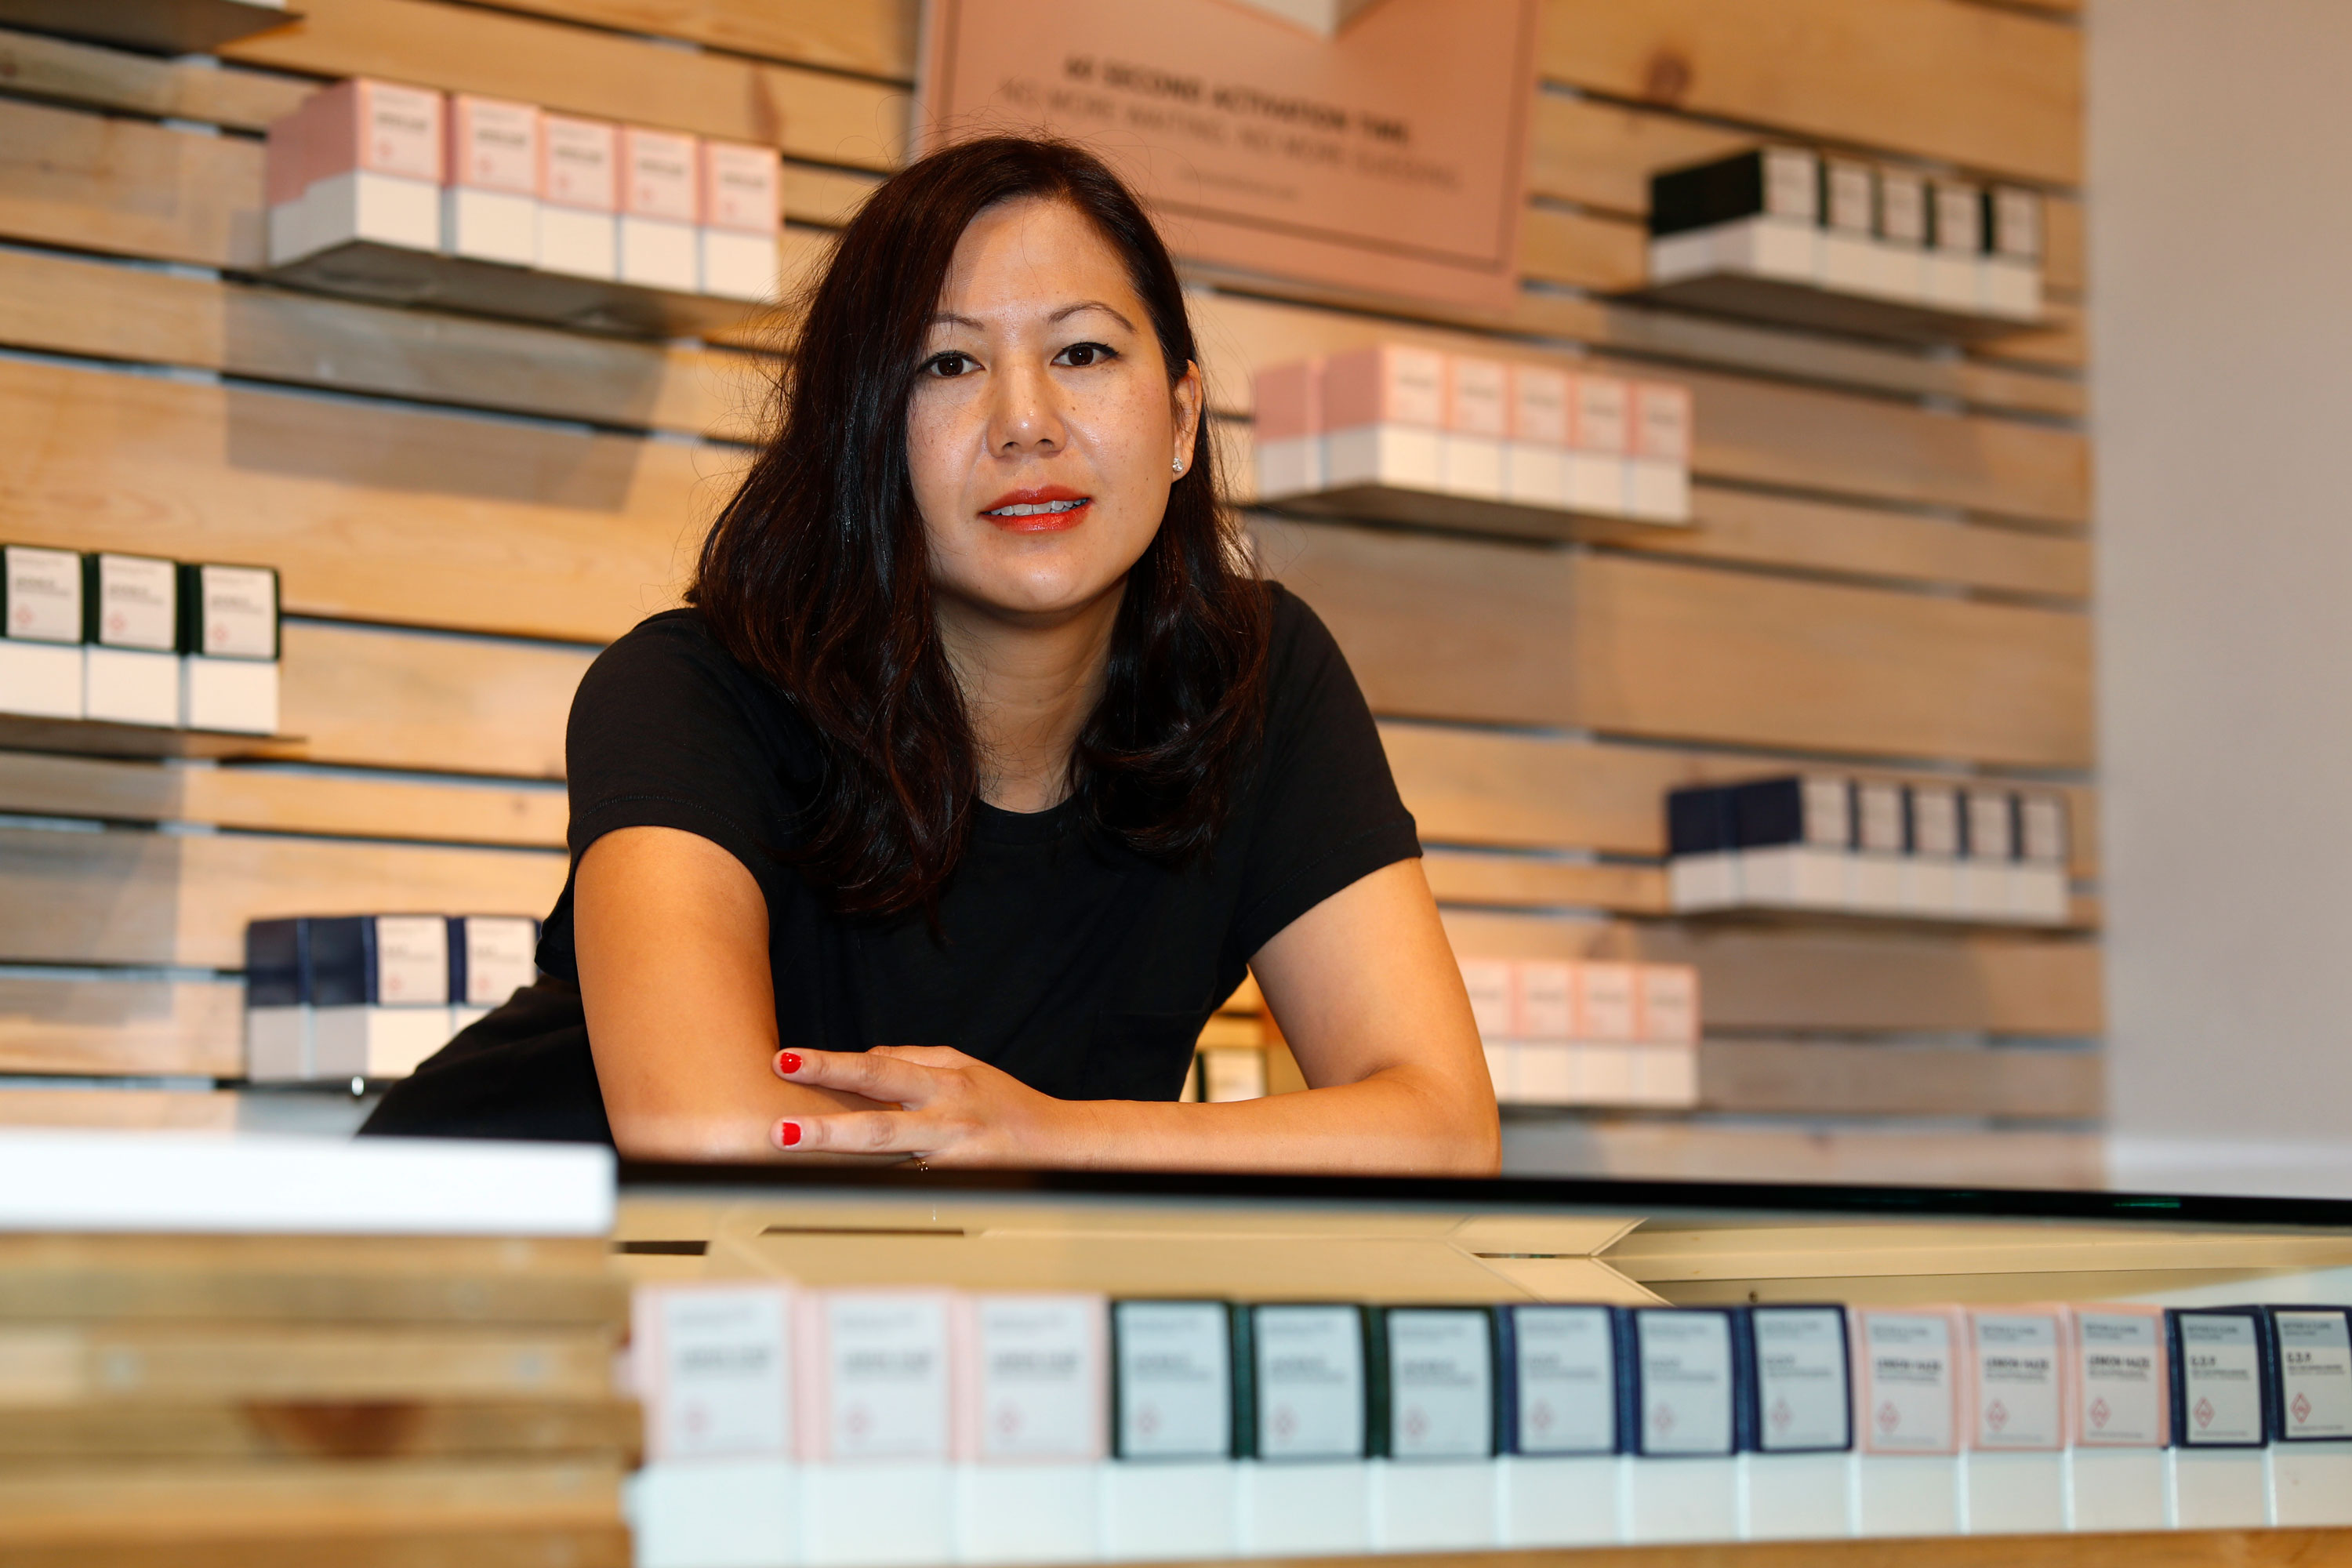 "In this Friday, July 26, 2019 photo, Leslie Siu poses for a portrait next to her cannabis products geared toward women on display in Groundswell dispensary in east Denver. Pregnancy started out rough for her. Morning sickness and migraines had her reeling and barely able to function at a demanding New York marketing job, so like rising numbers of U.S. mothers-to-be, she turned to marijuana. ""l was finally able to get out from under my work desk,"" said Siu, who later started her own pot company and says her daughter, now 4, is thriving."